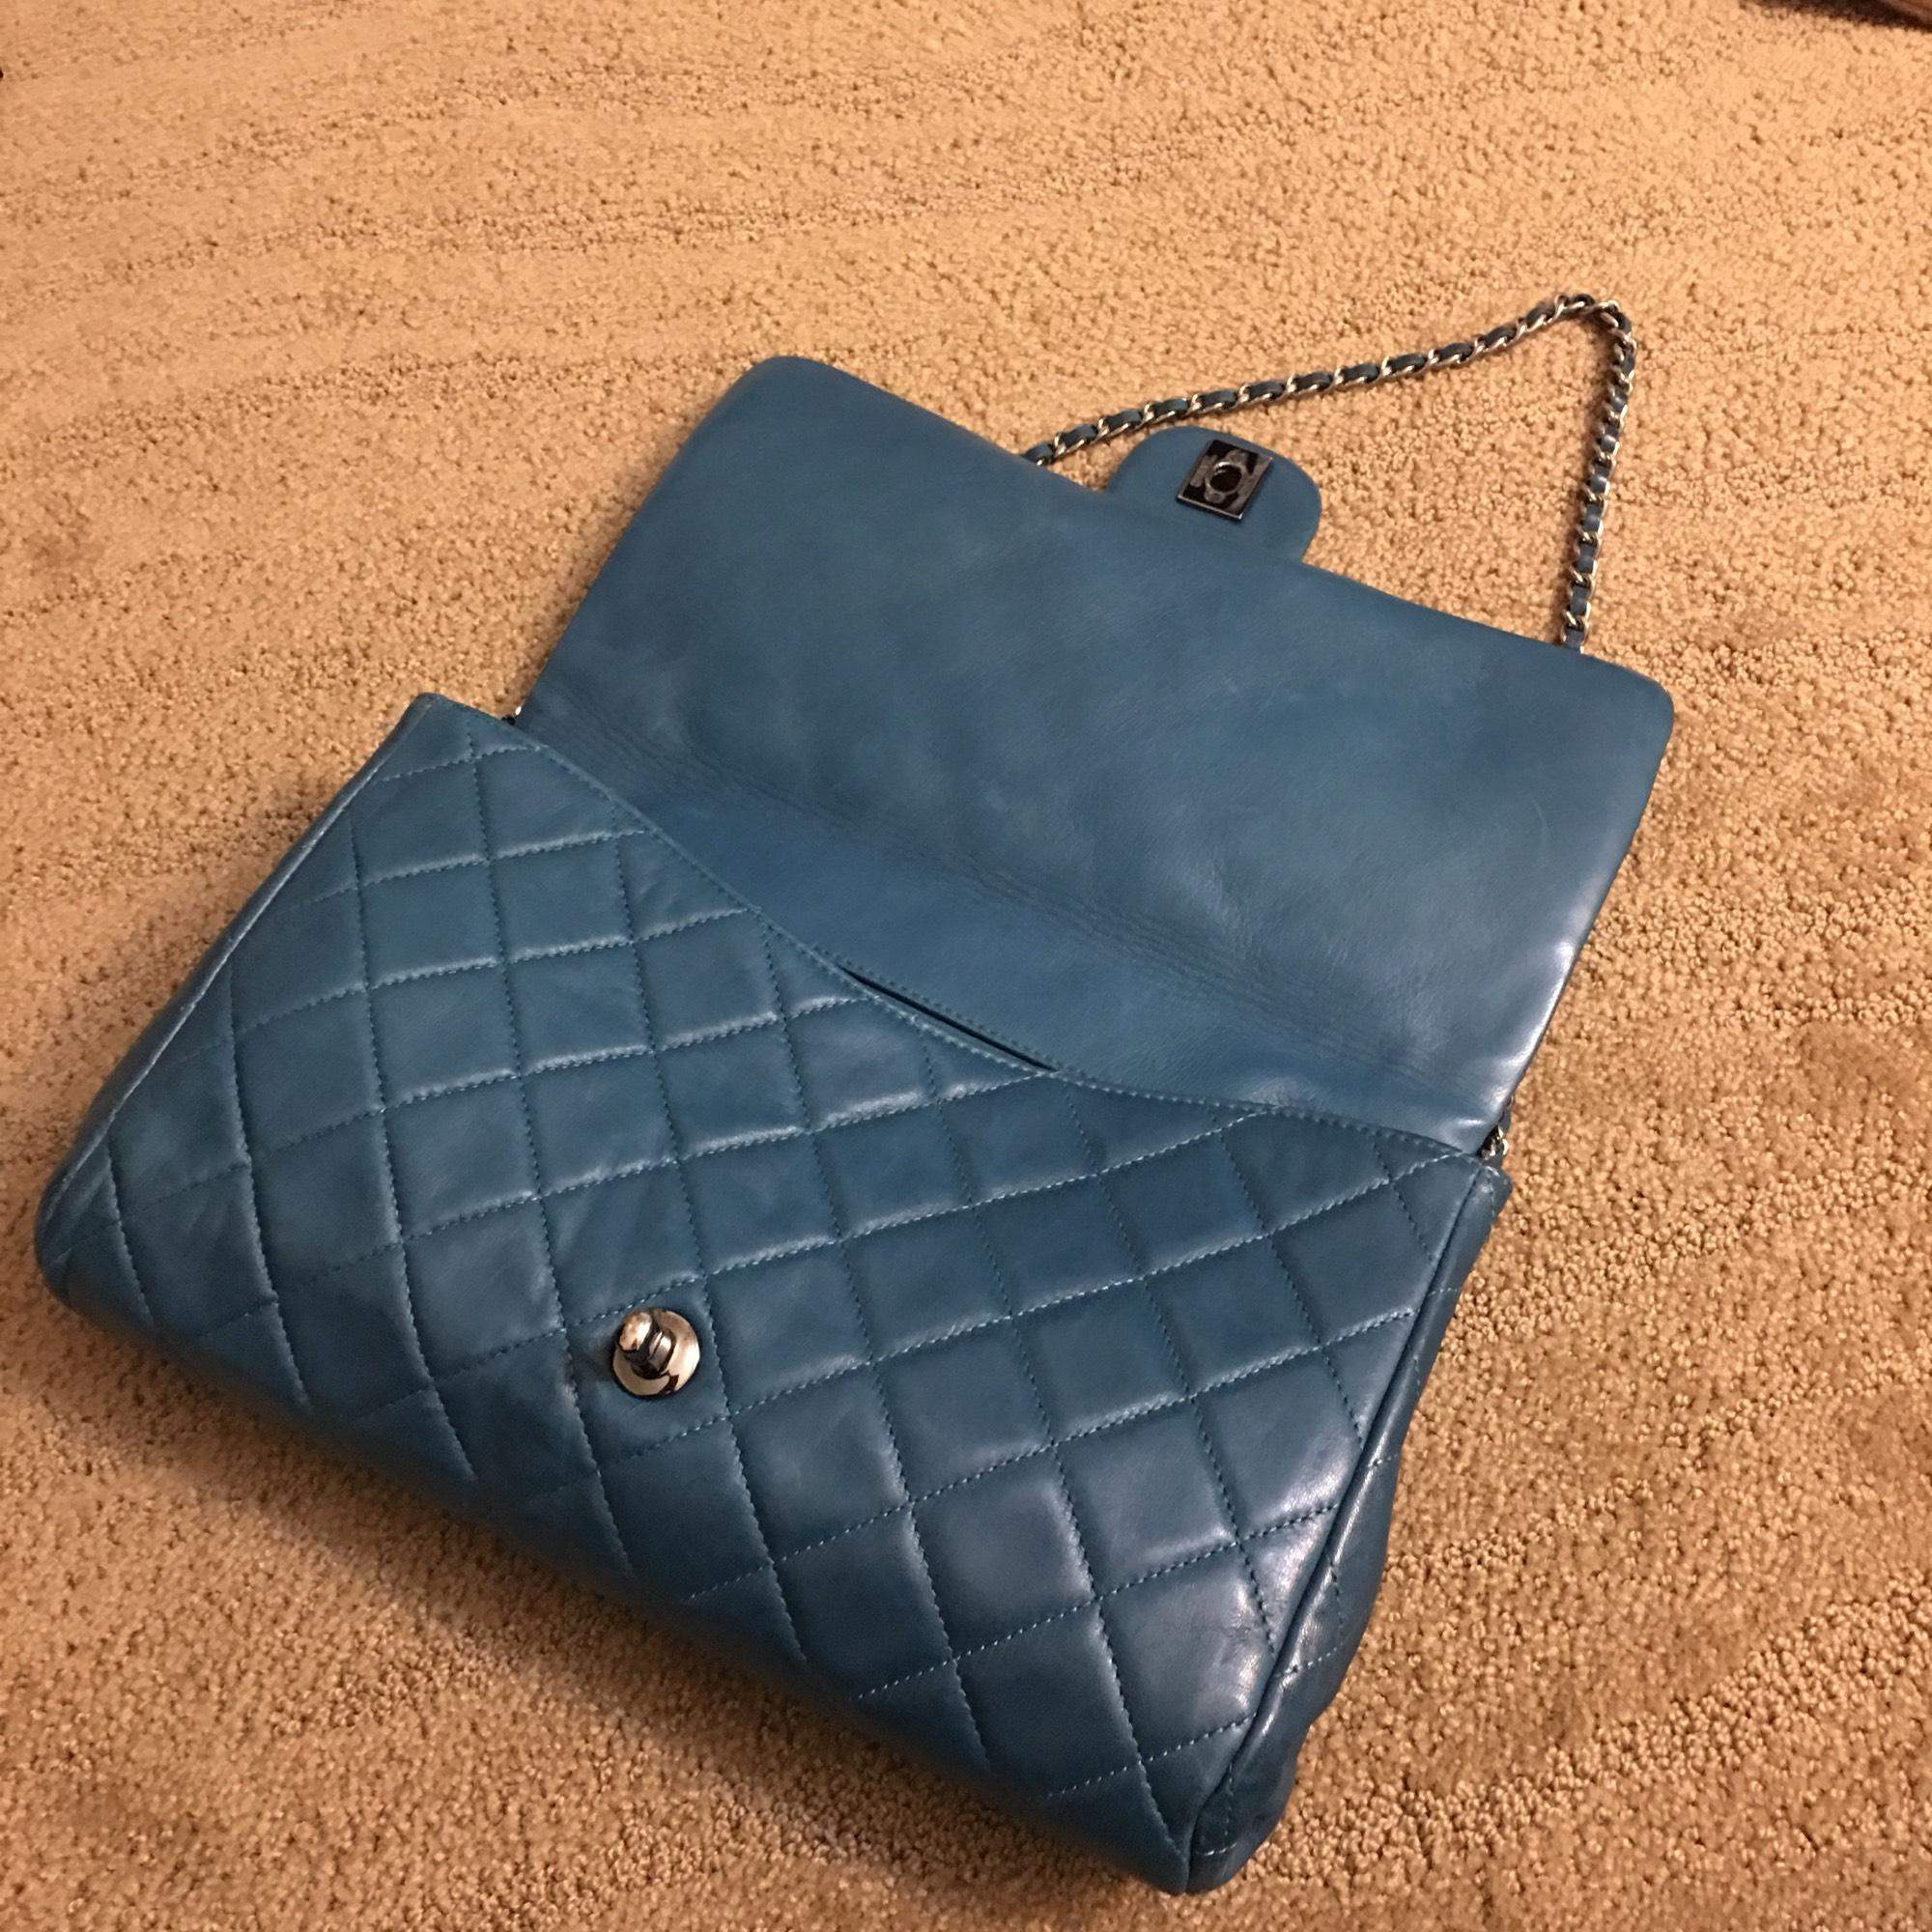 Chanel Timeless Clutch With Chain Teal Leather Shoulder